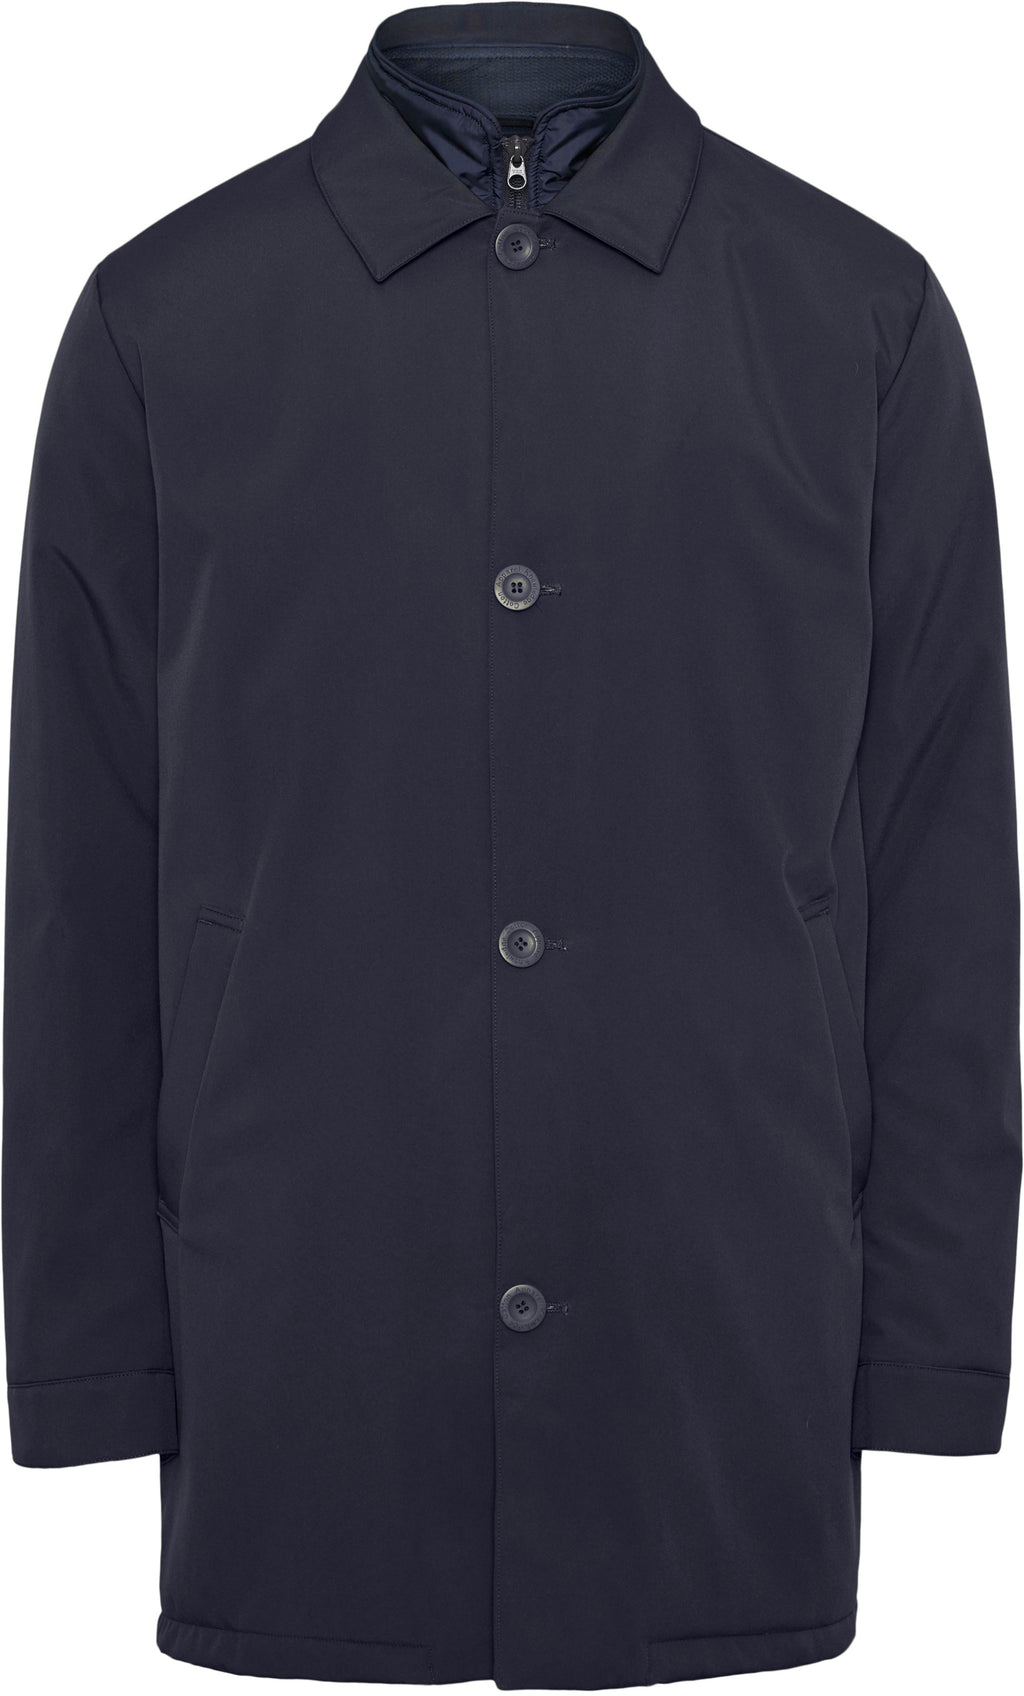 Arctic Canvas Jacket with buttons von Knowledge